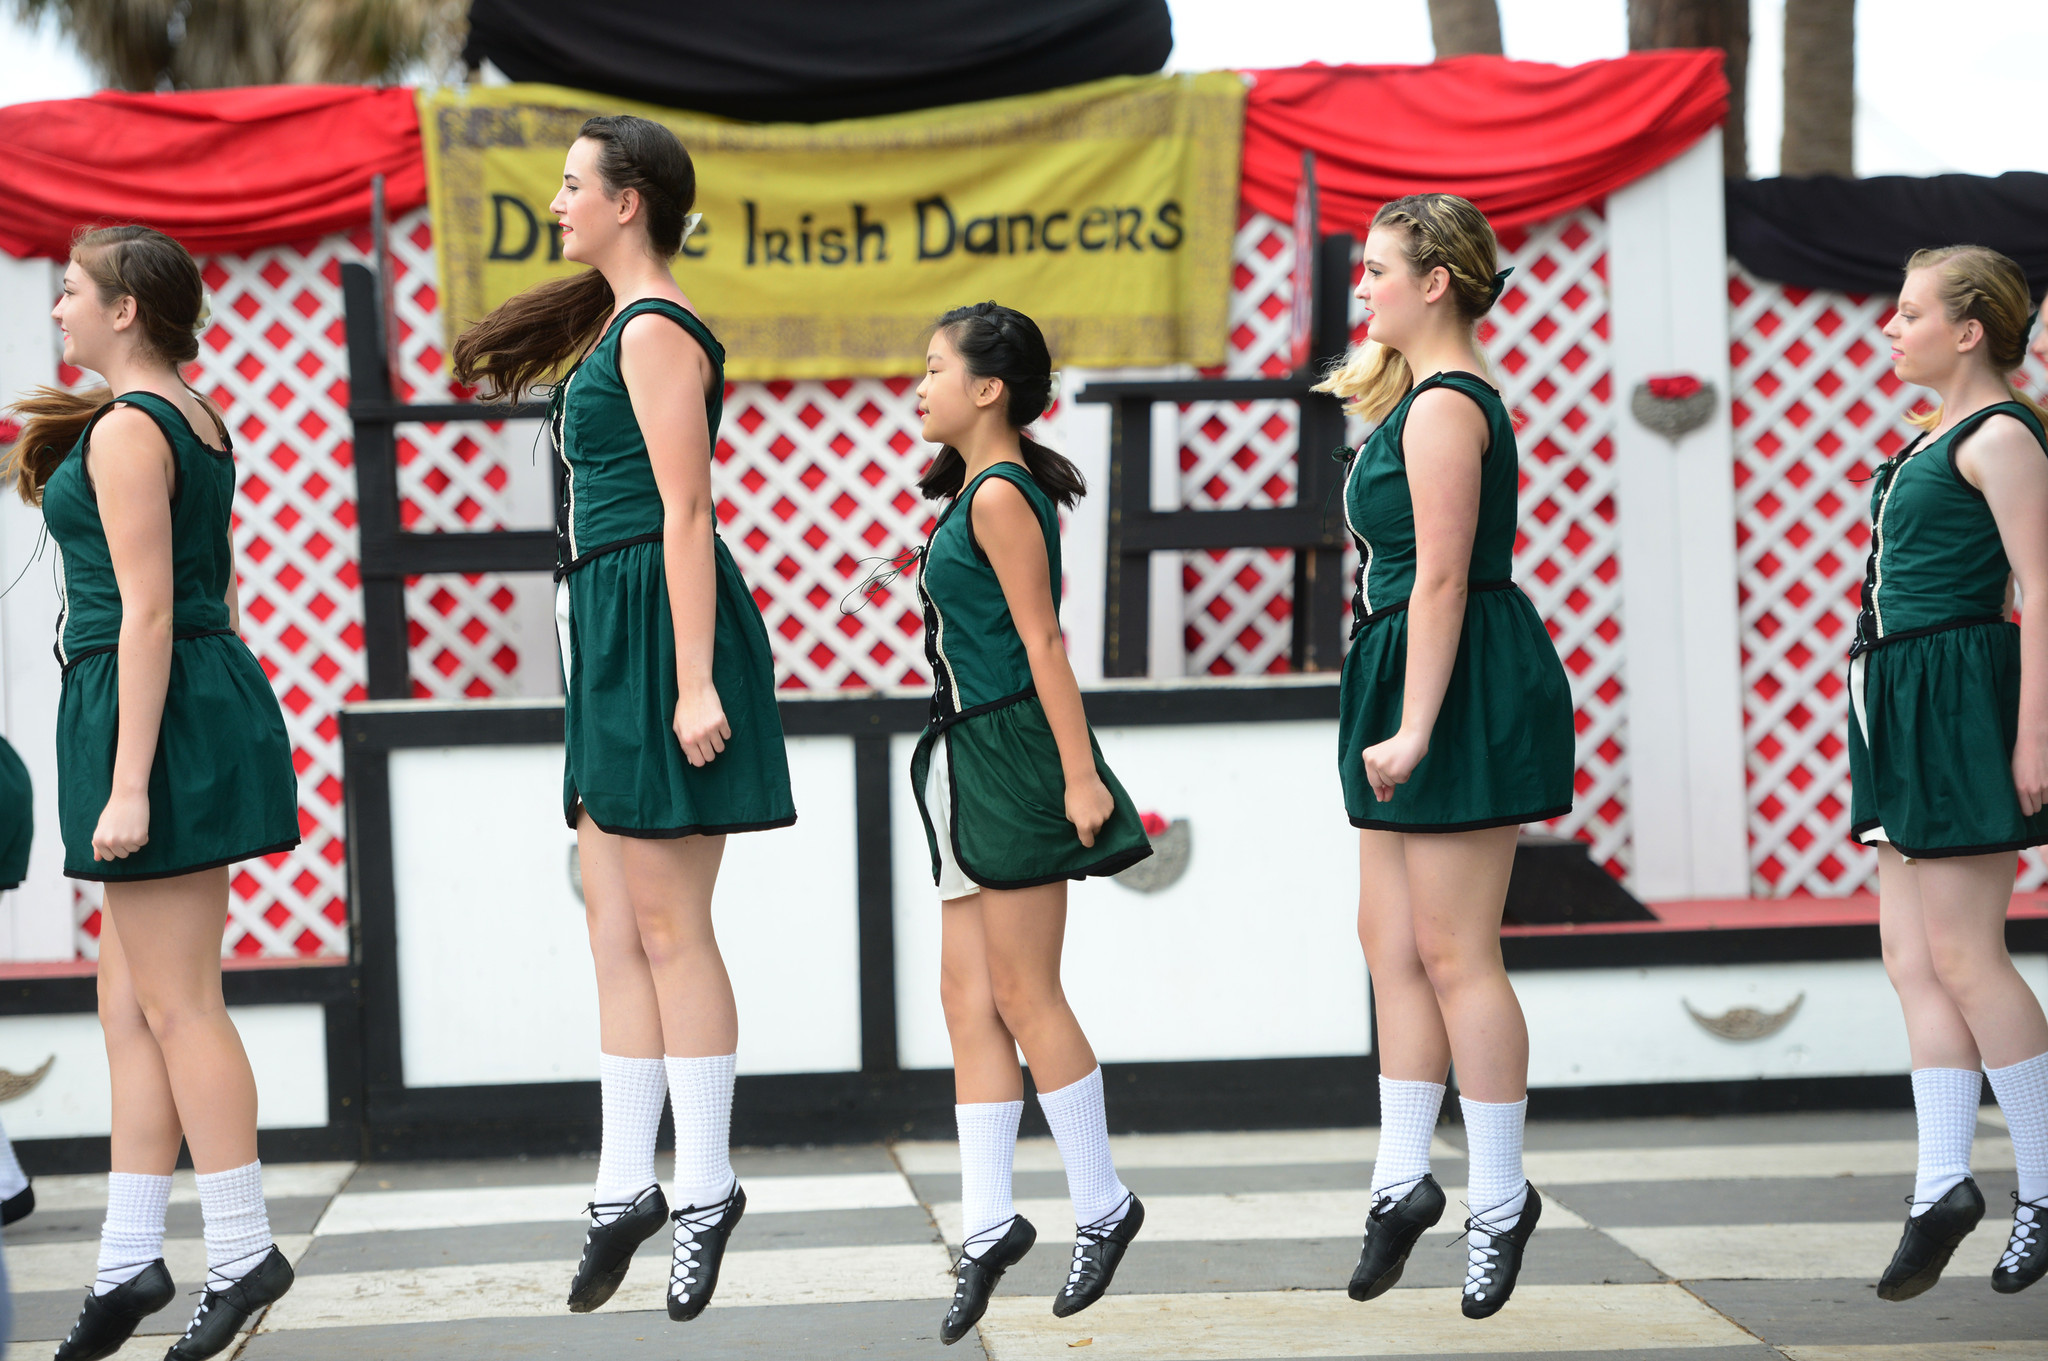 Renaissance Festival photos - Drake Irish Dancers